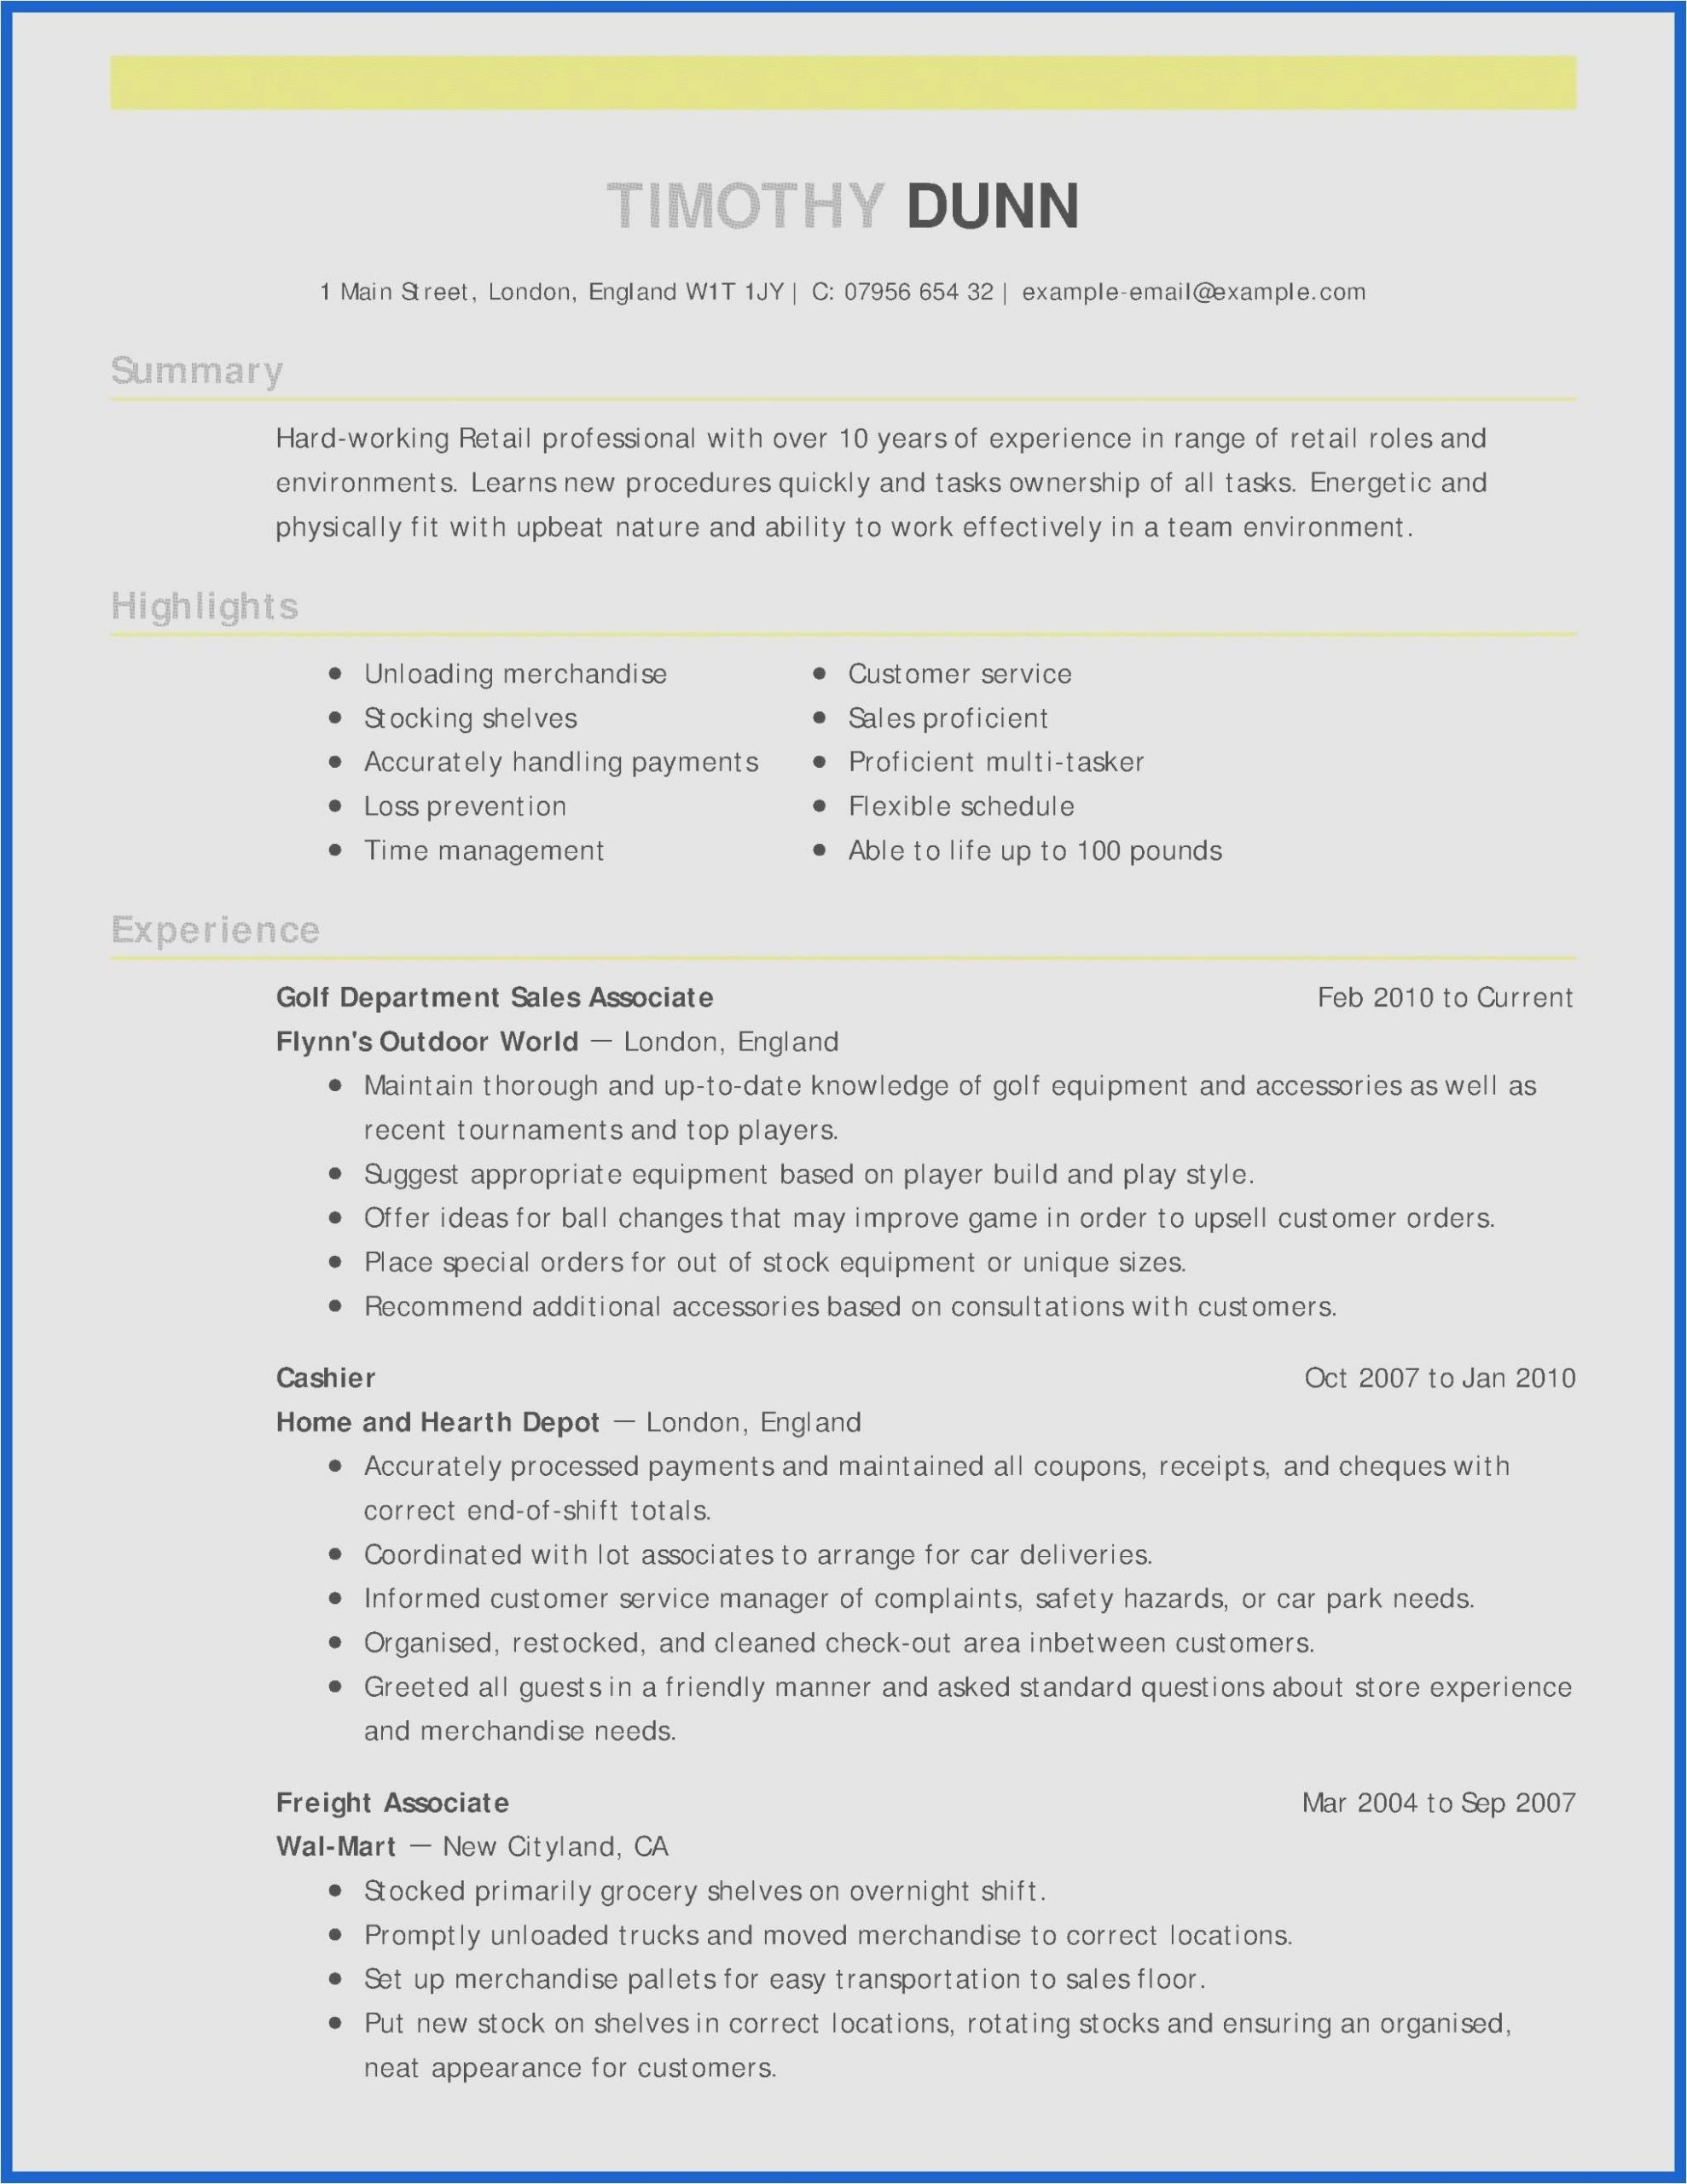 Sick Email Template Luxury Schedule Meeting Email Template